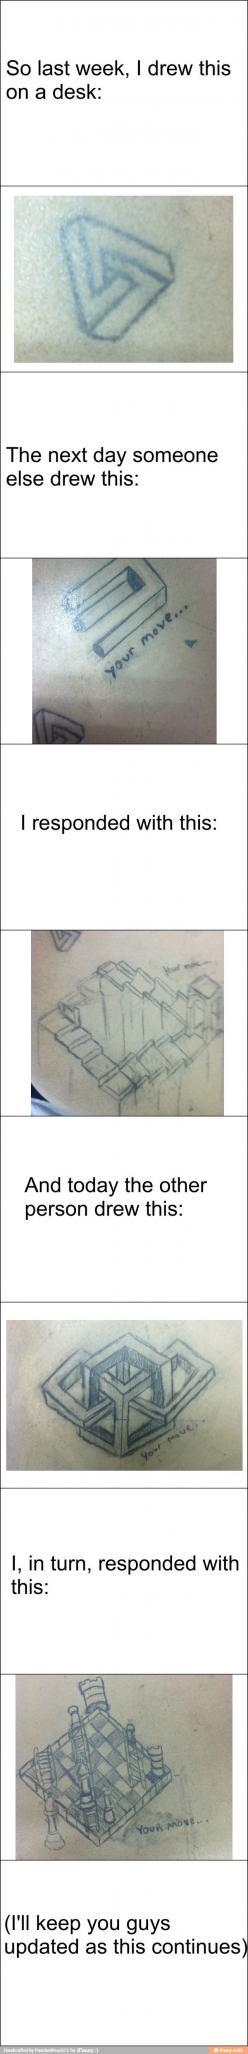 Optical illusion battle / iFunny :): Moving Optical Illusions, Illusion Battle, Desk Doodle, Artists Duel, Draw Illusions, Art School, Funny Illusions, Drawing